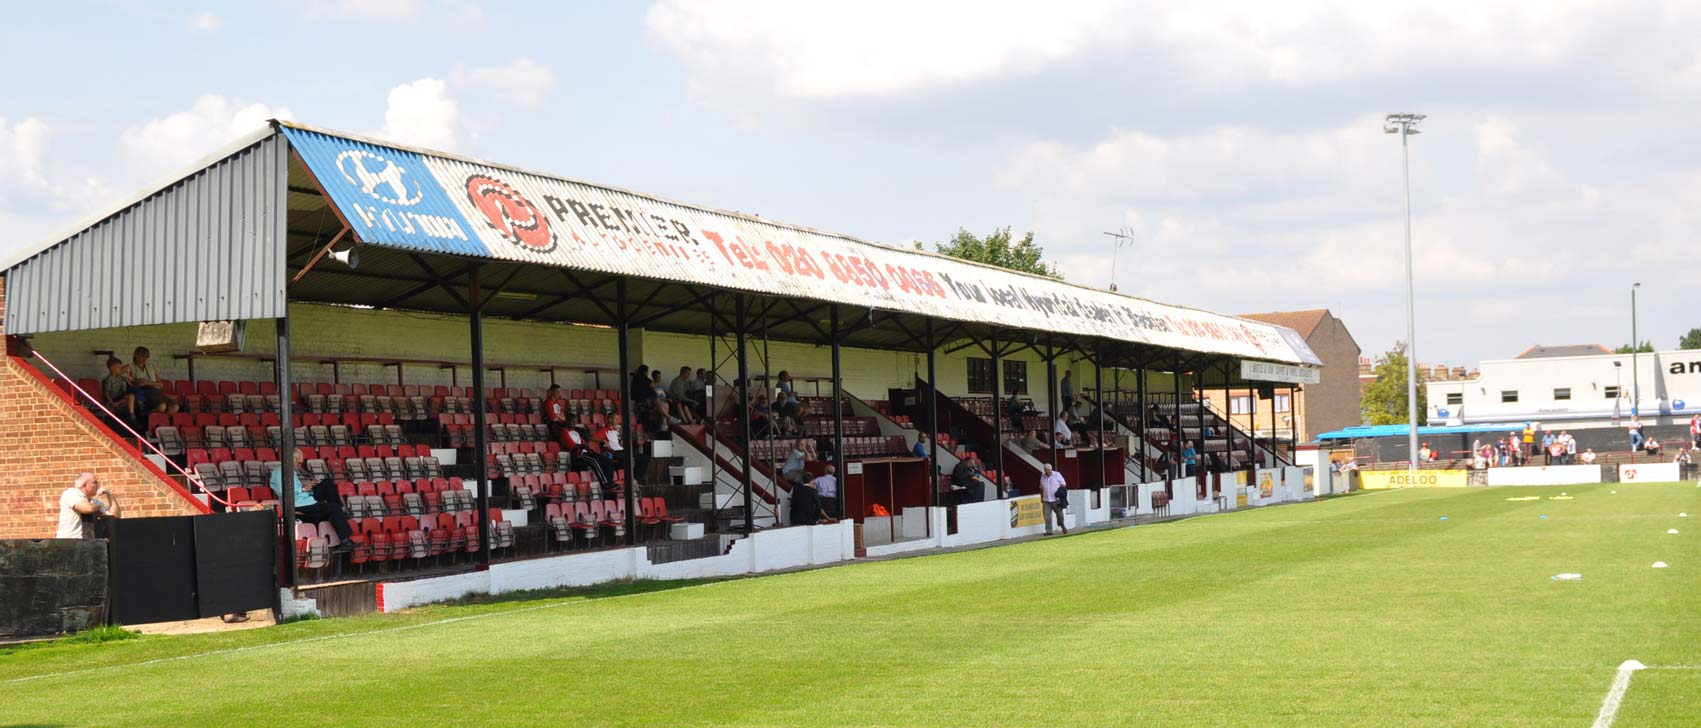 Match Preview: Welling United vs Charlton